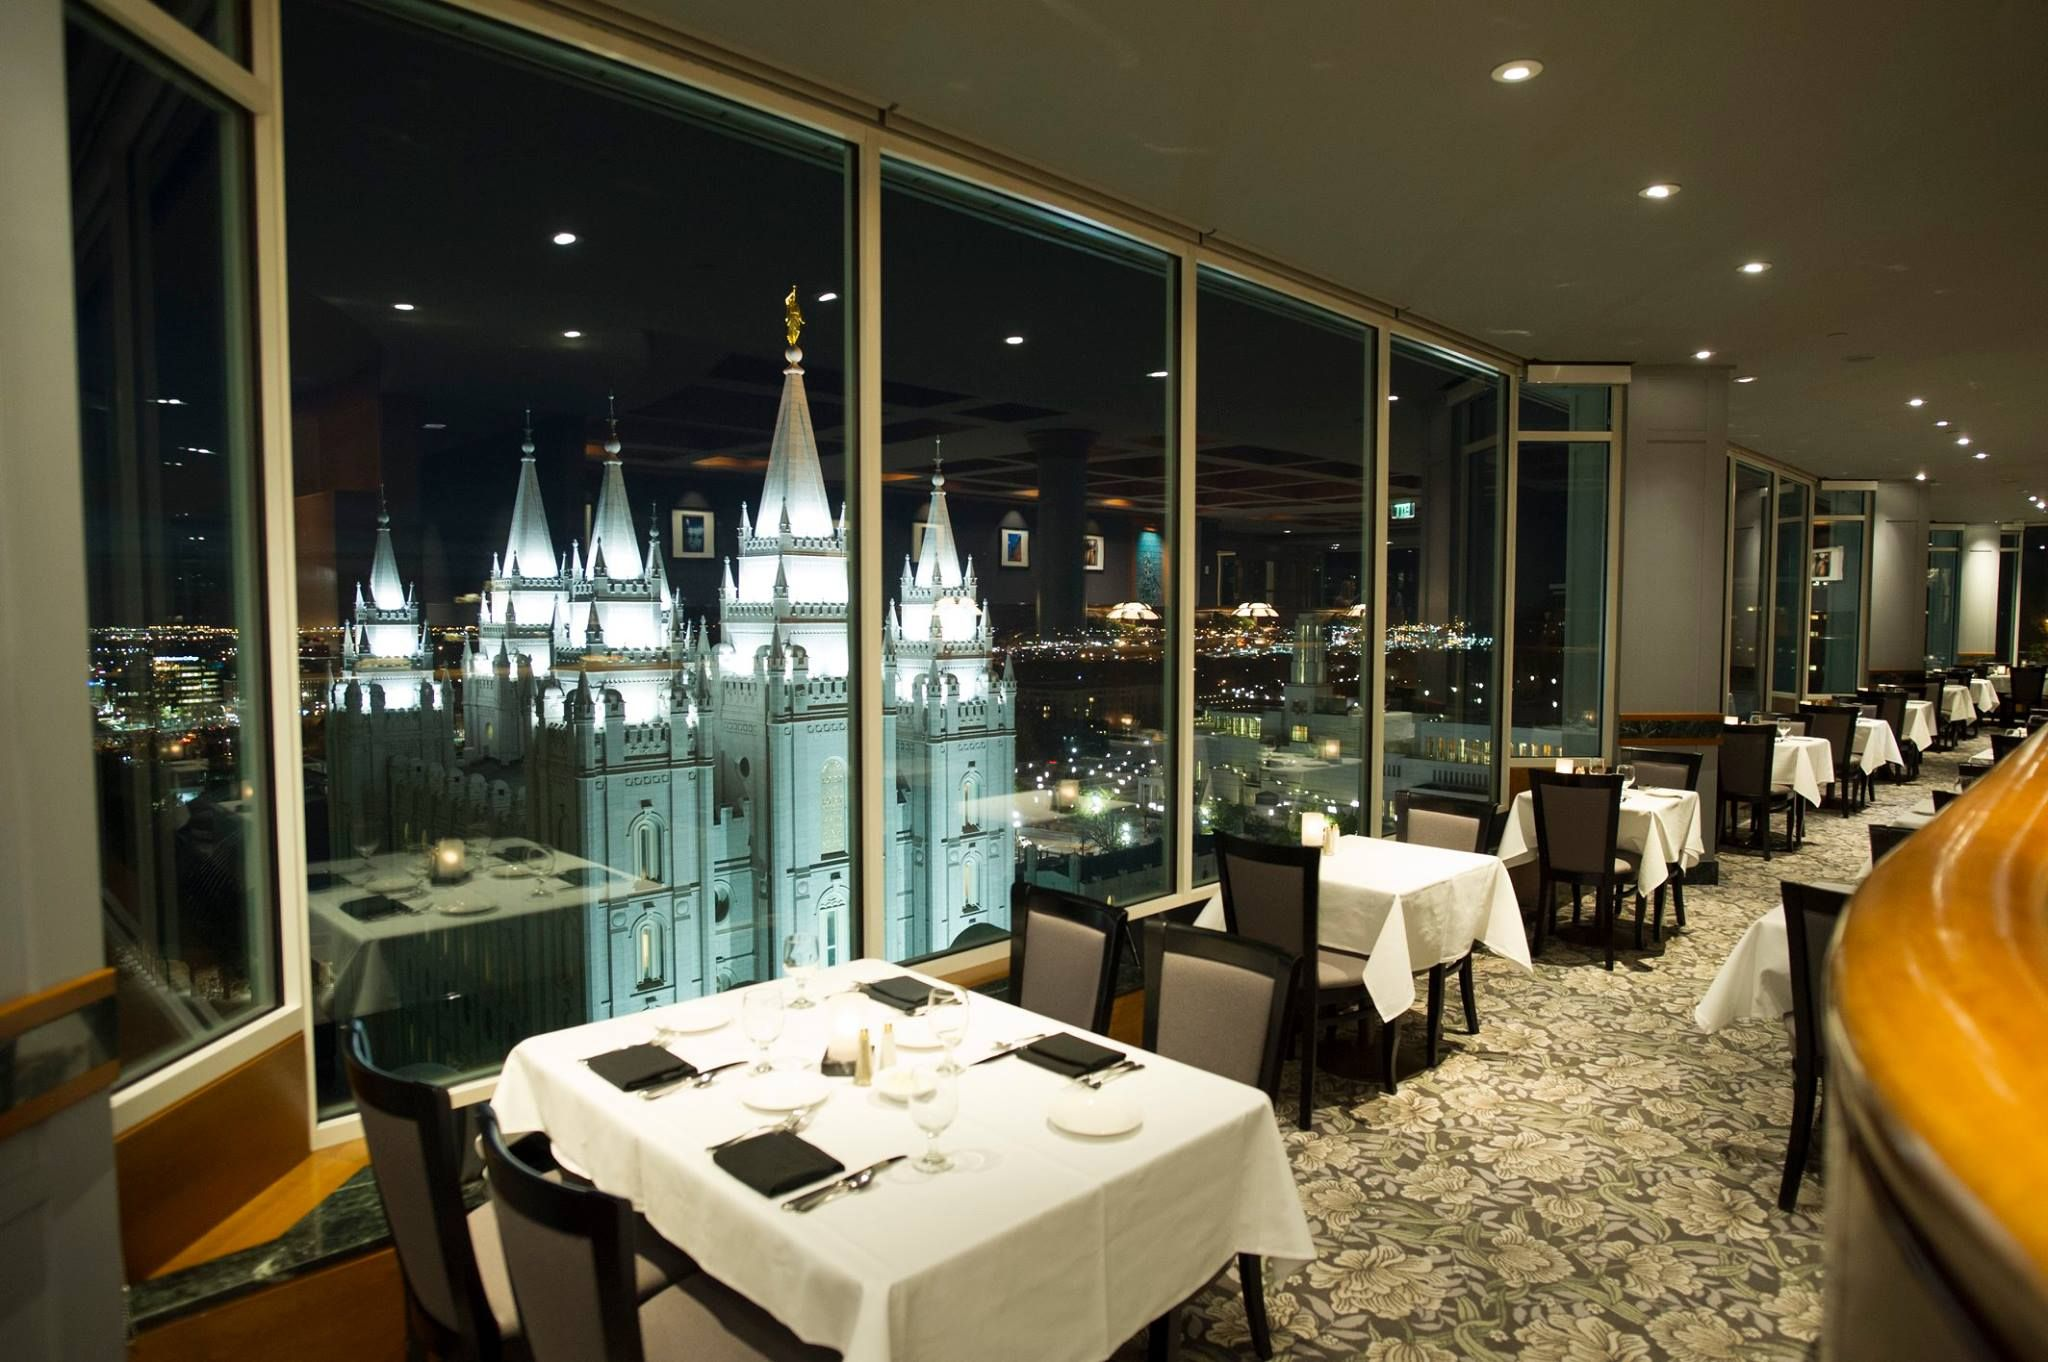 7 Of The Best Valentine S Day Restaurants In Slc Temple Square The Roof Restaurant Salt Lake City Restaurants City Restaurants